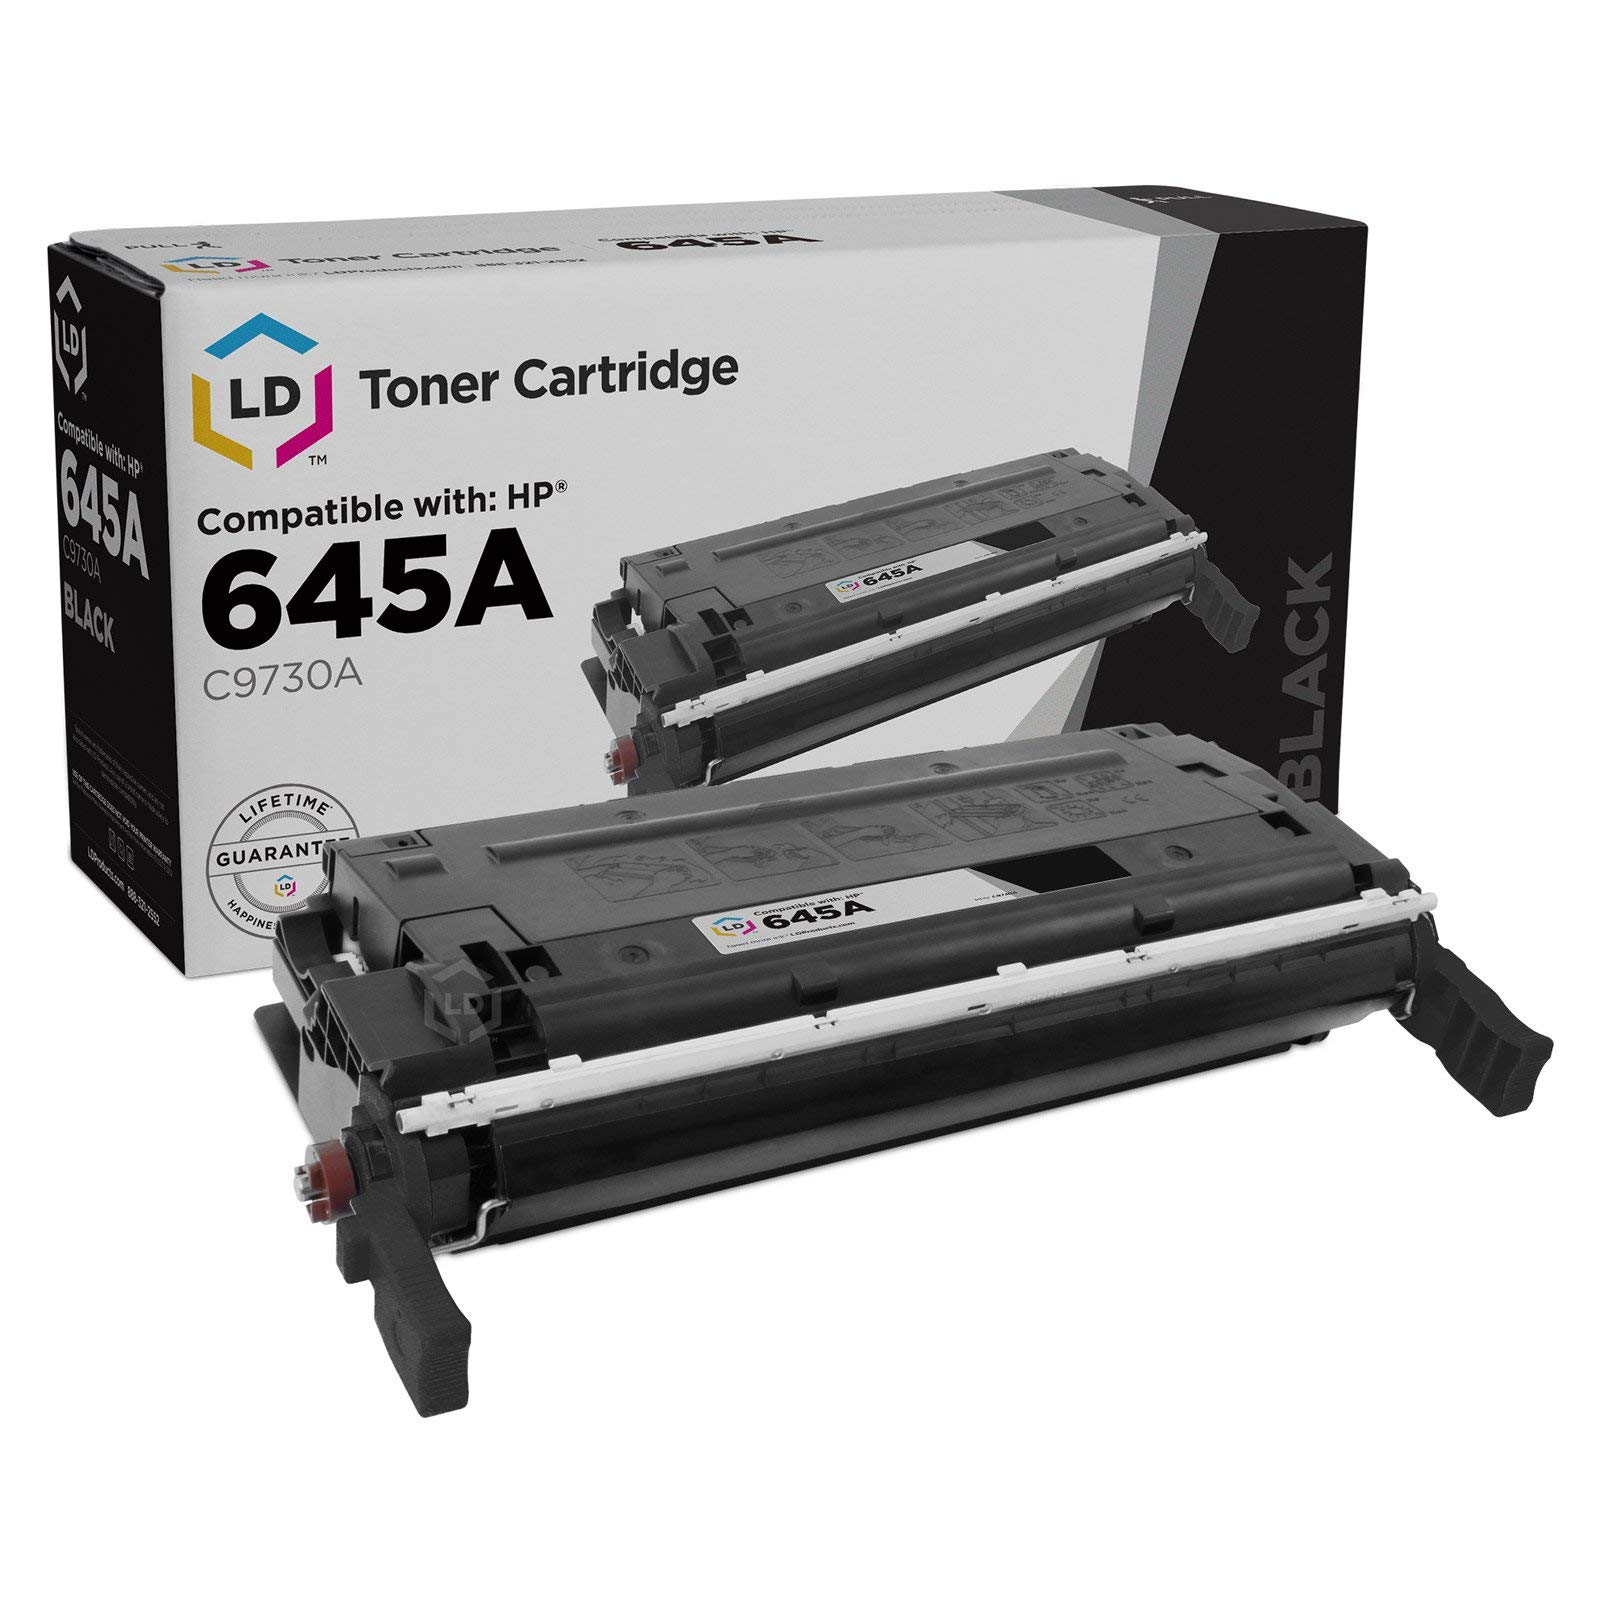 LD Remanufactured Toner Cartridge Replacement for HP 645A C9730A (Black)